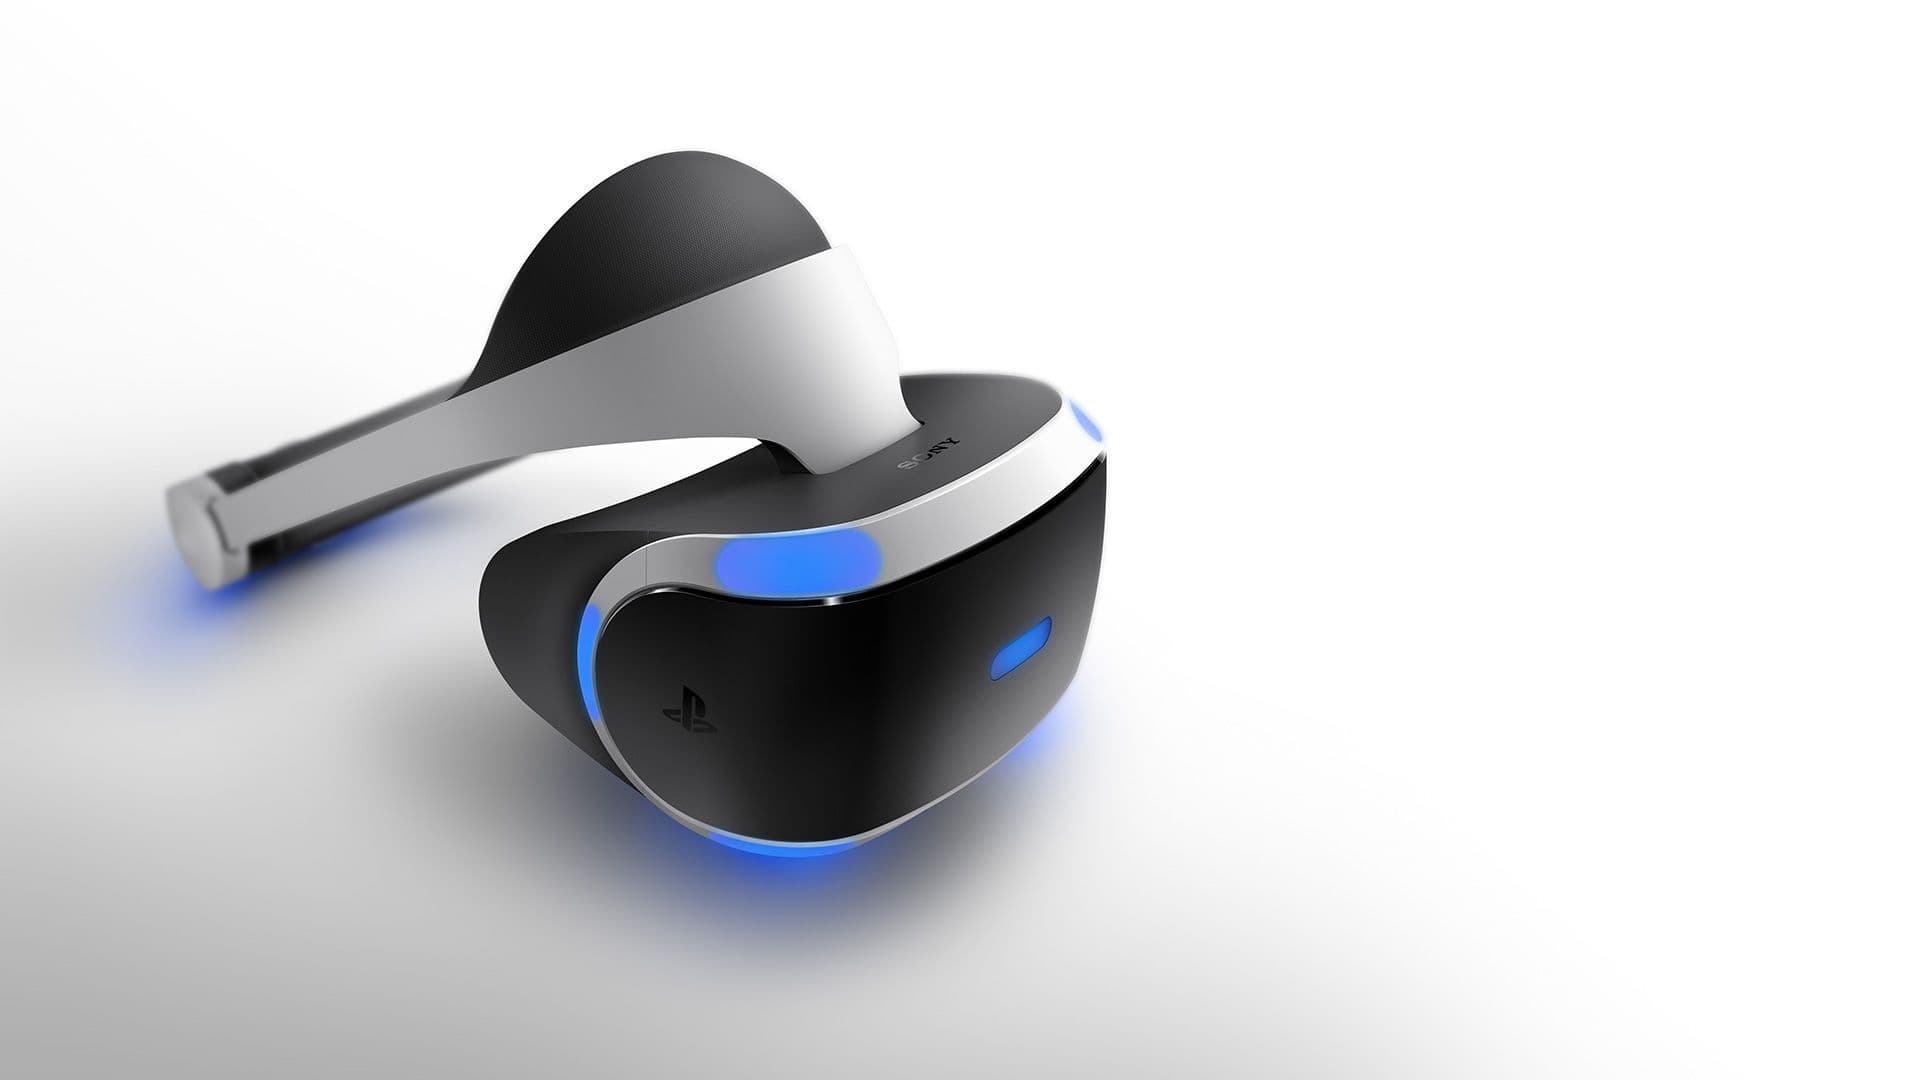 Hd Quality Wallpaper Download 10 Playstation Vr Wallpapers High Quality Download